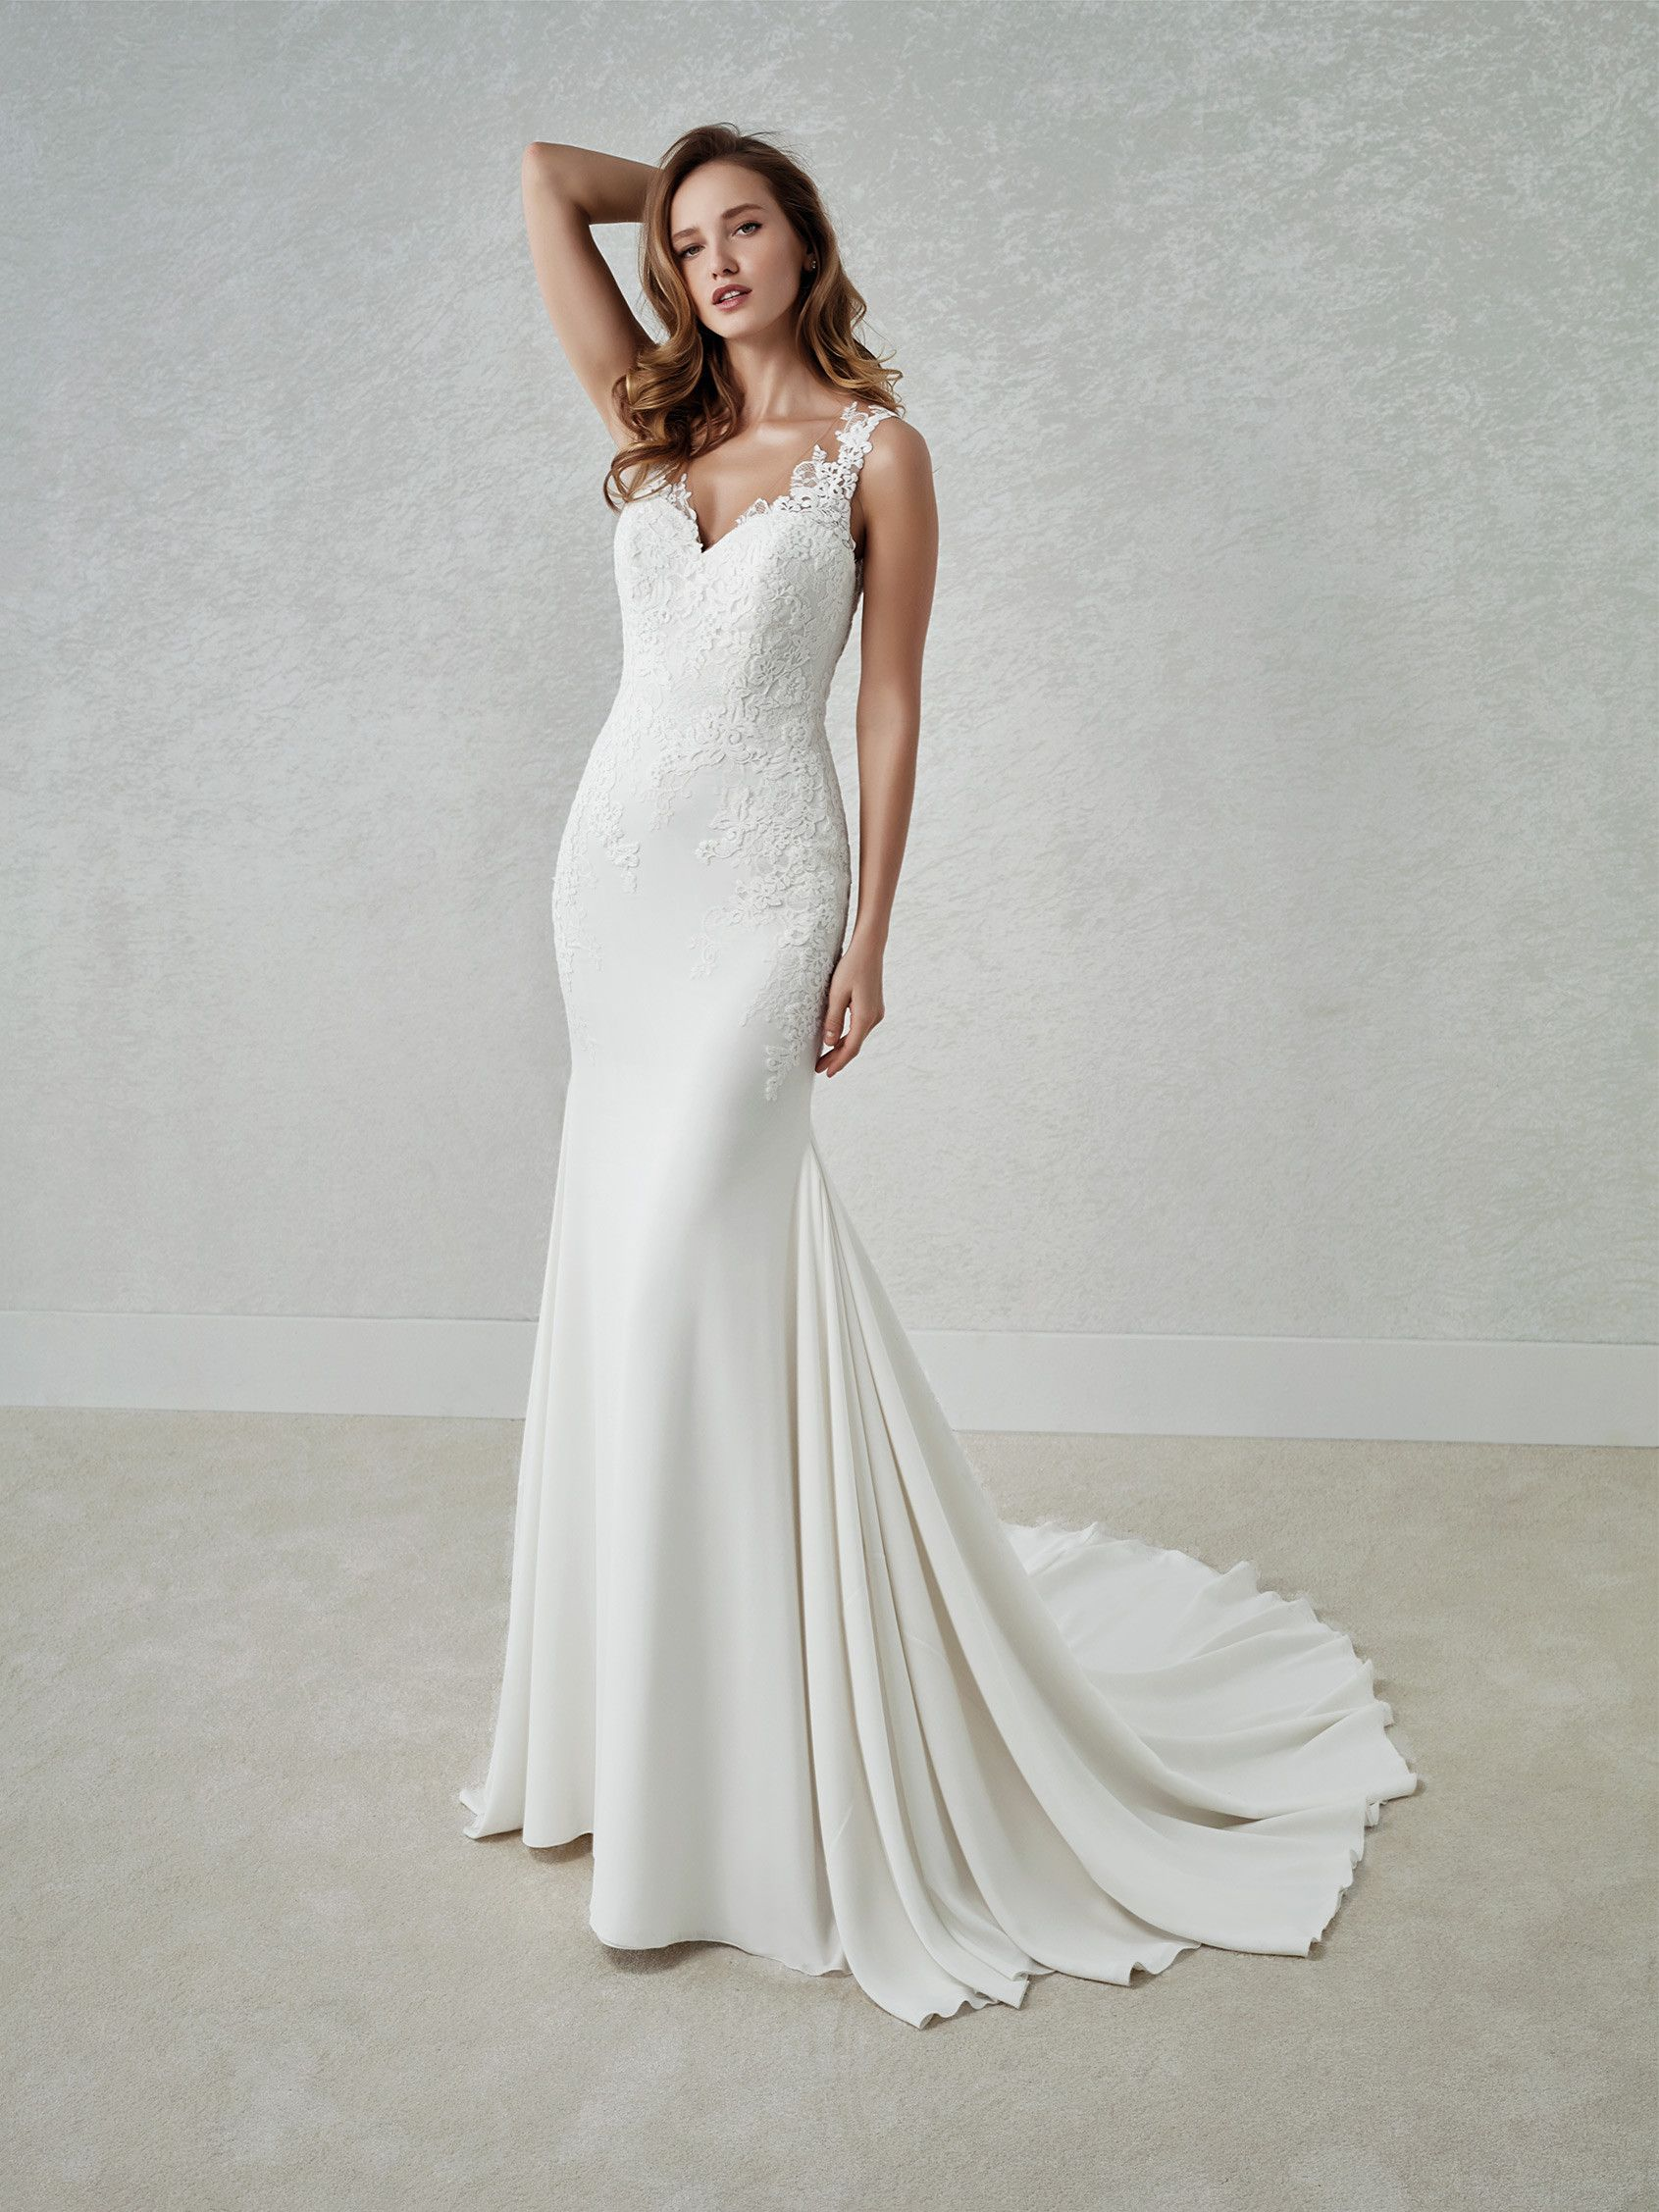 White One Collection By St Patrick Fina Lovely Mermaid Wedding Dress With A Two Piece Effec Wedding Dresses Wedding Dresses Satin Satin Mermaid Wedding Dress [ 2255 x 1691 Pixel ]